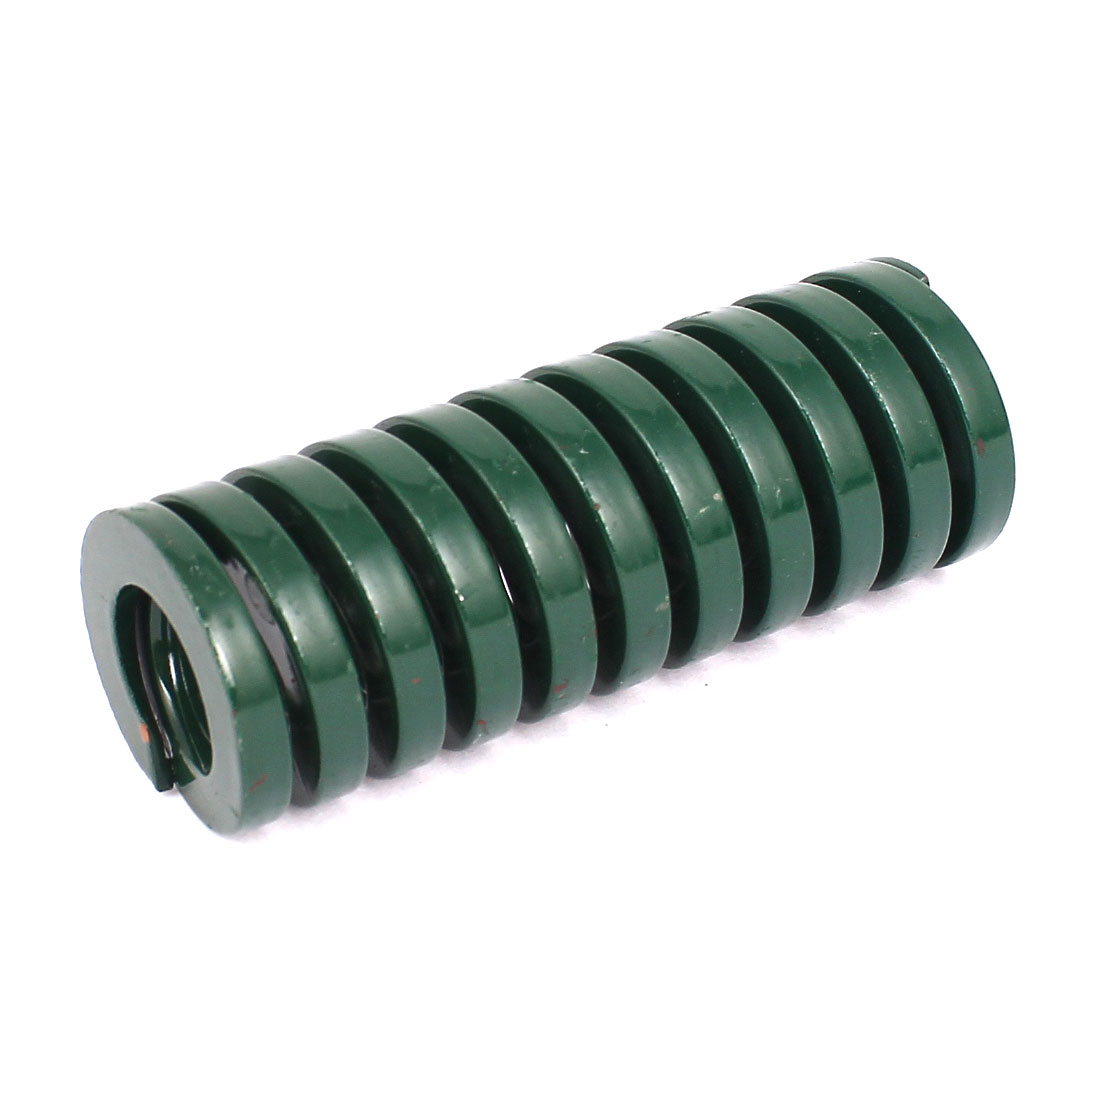 30mm OD 80mm Long Heavy Load Coil Stamping Compression Mold Die Spring Green